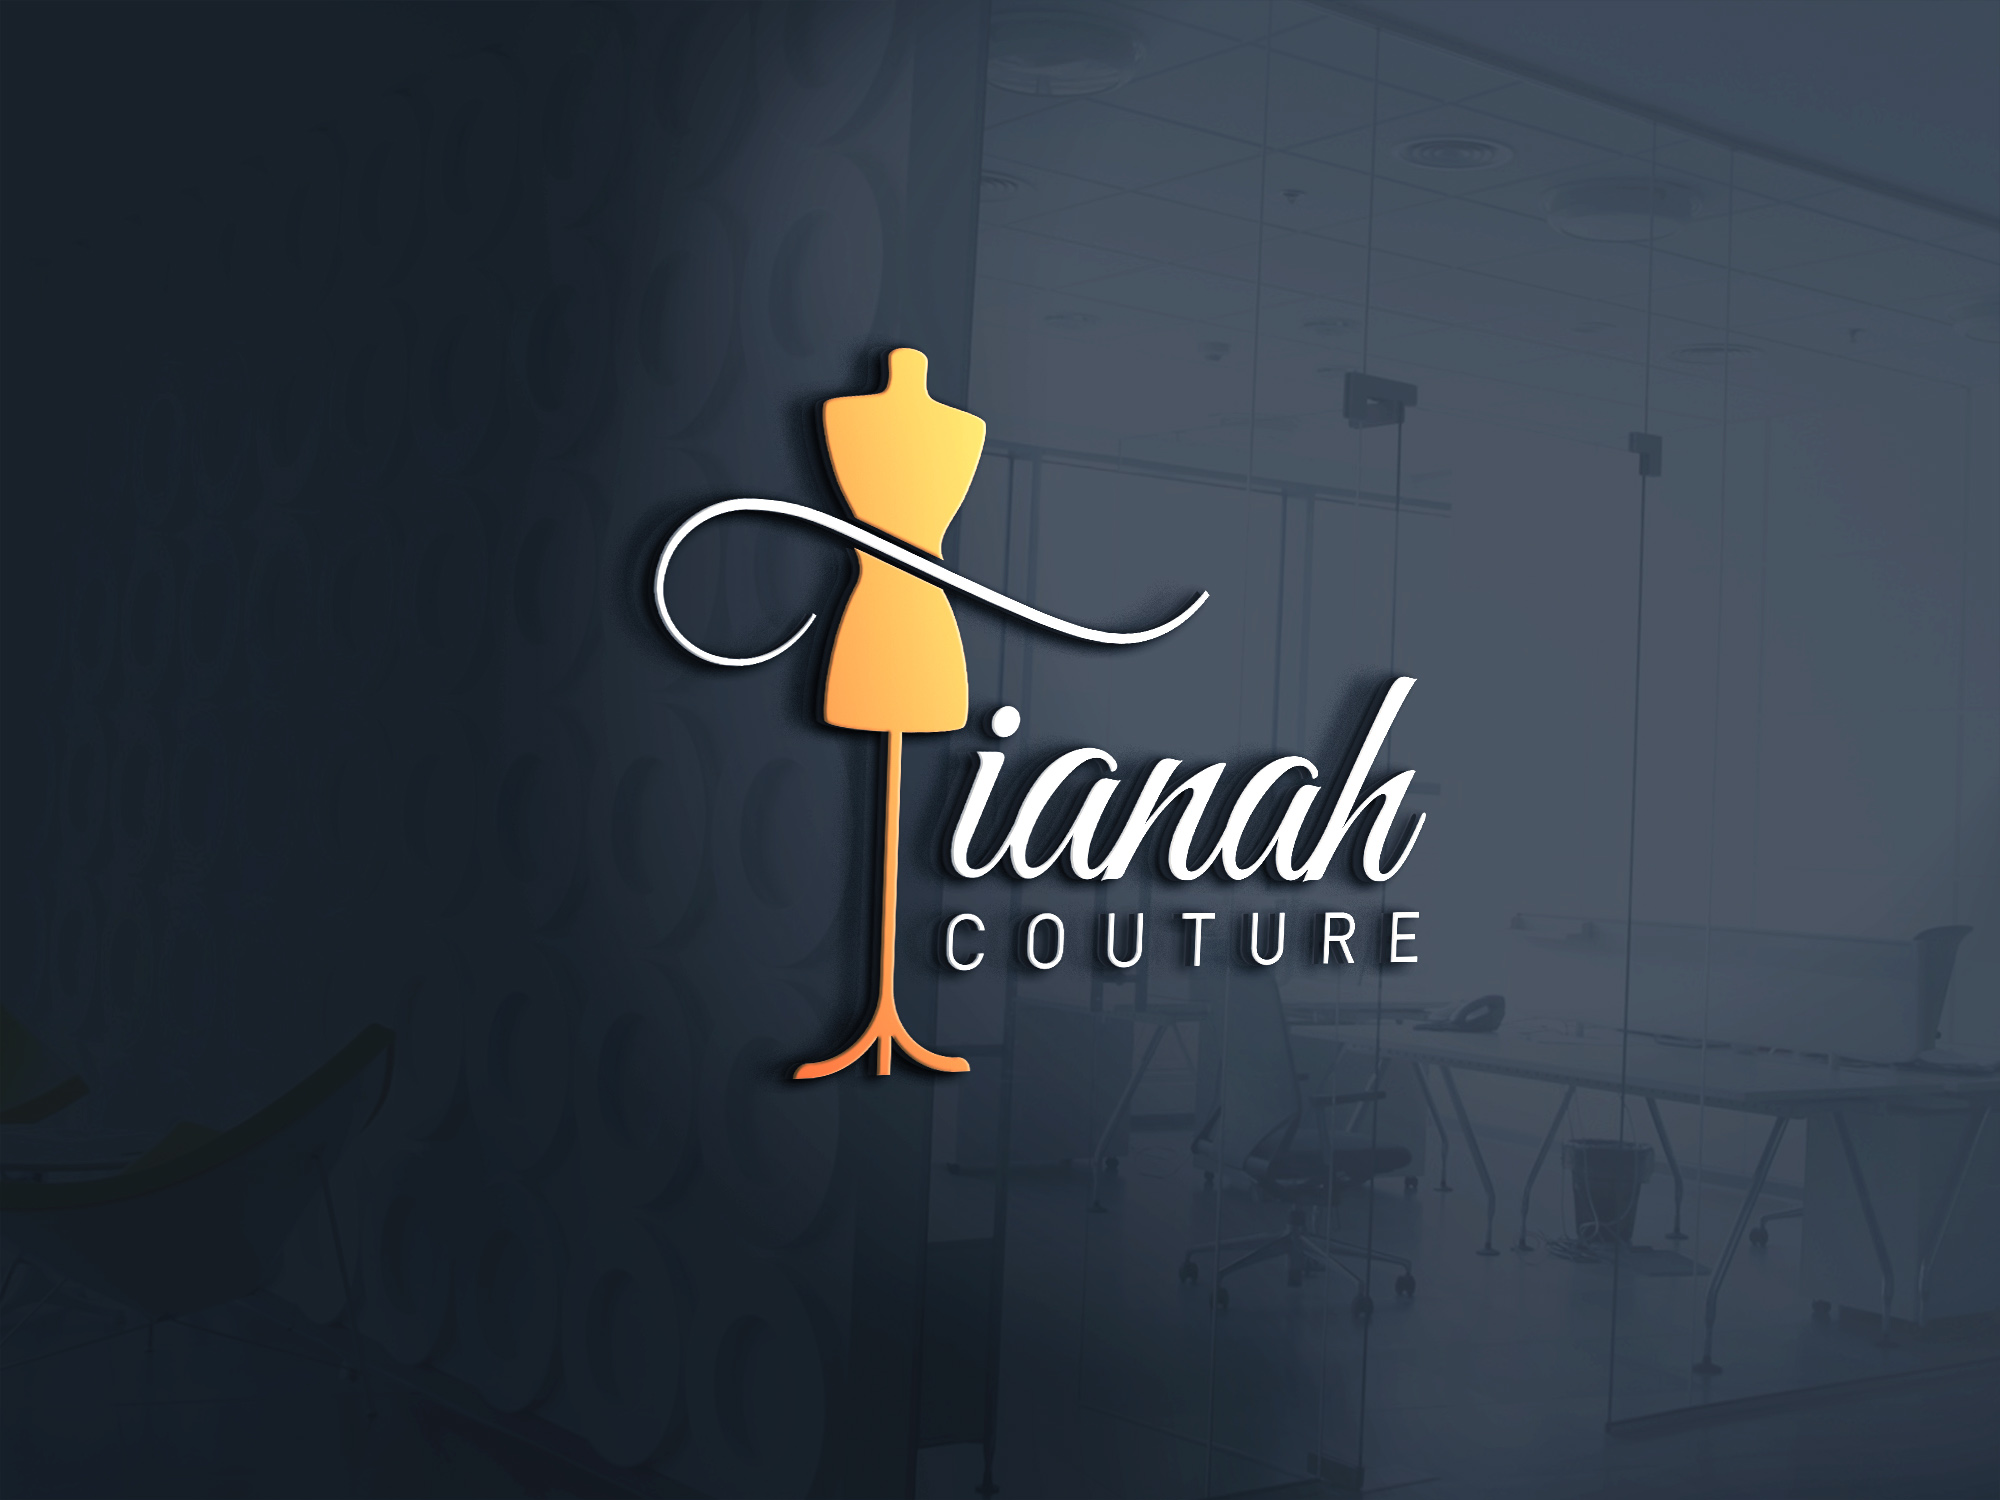 Tianah Couture leedigital